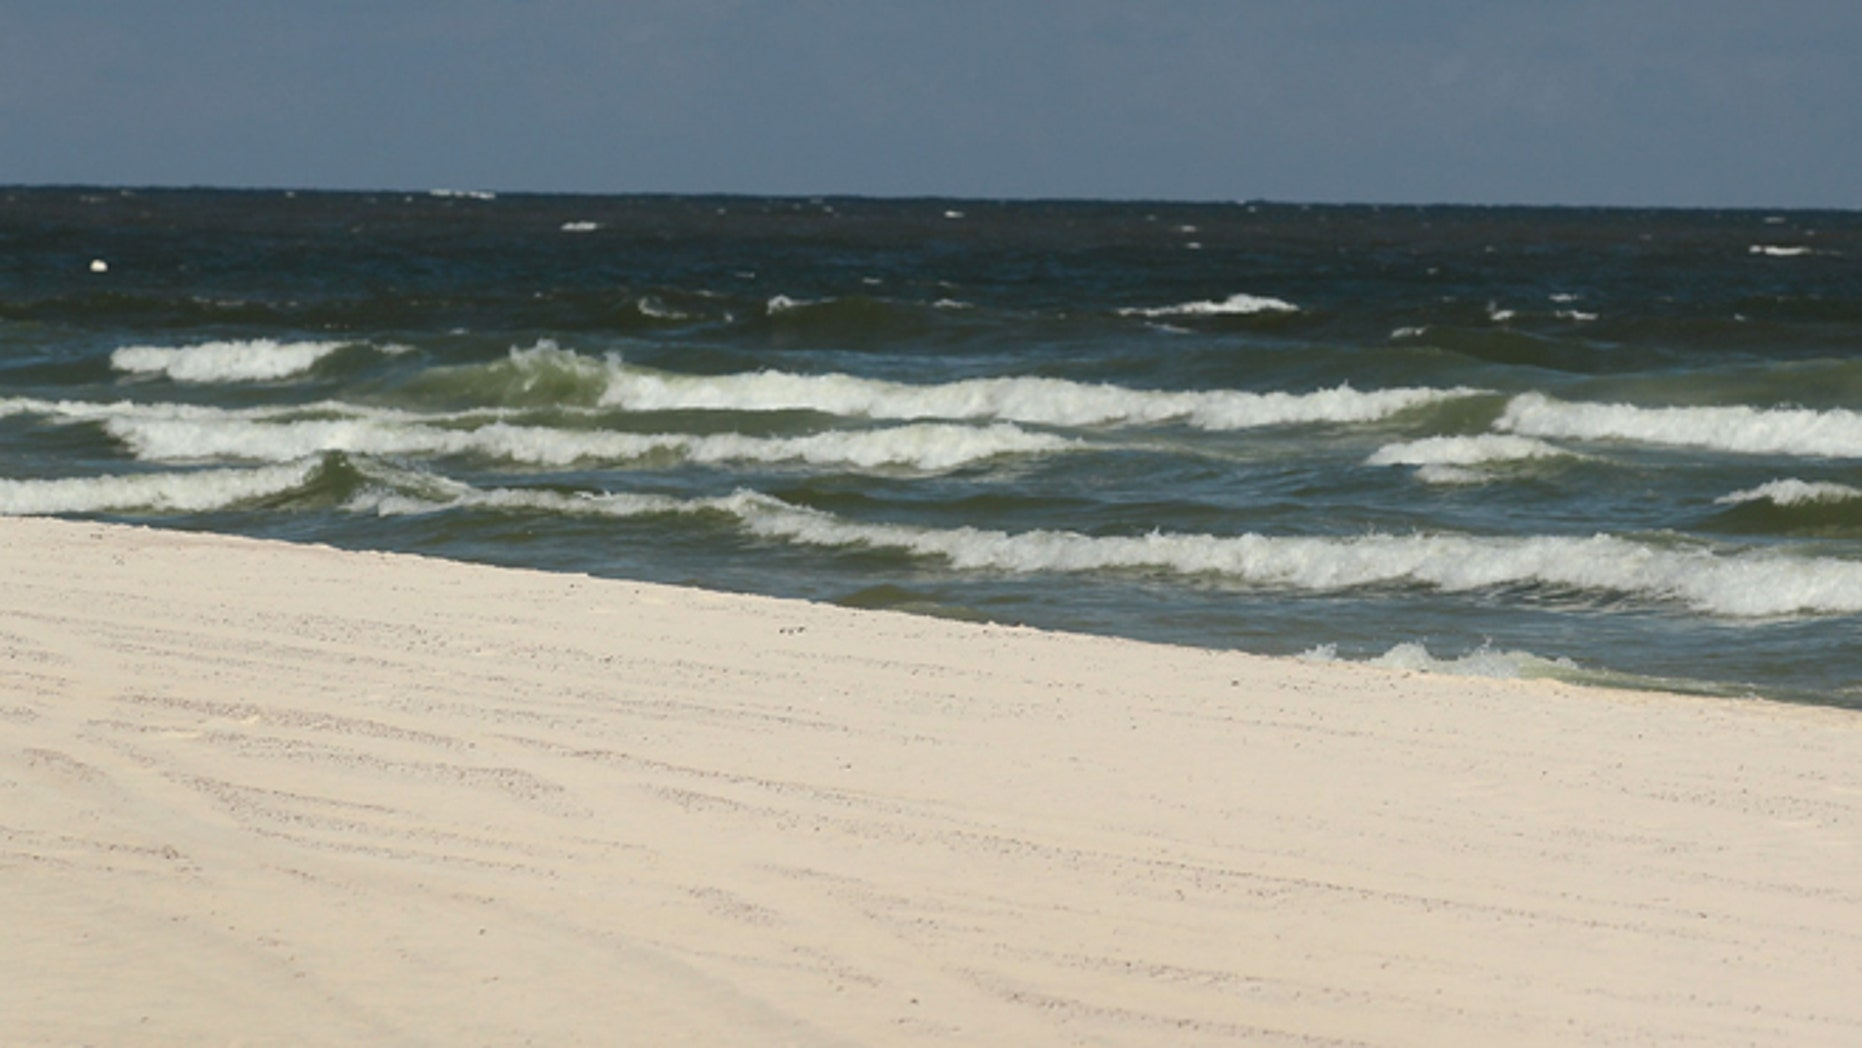 GULF SHORES, AL - JULY 04: Julie Wonder on vacation from Czechoslovakia enjoys an empty beach as people stayed away due to the threat of contamination from the Deepwater Horizon oil spill in the Gulf of Mexico on July 4, 2010 in Gulf Shores,Alabama. The oil spill may have a huge negative economic impact on gulf coast businesses during what should be a busy 4th of July. Millions of gallons of oil have spilled into the Gulf since the April 20 explosion on the drilling platform.  (Photo by Joe Raedle/Getty Images) *** Local Caption *** Julie Wonder